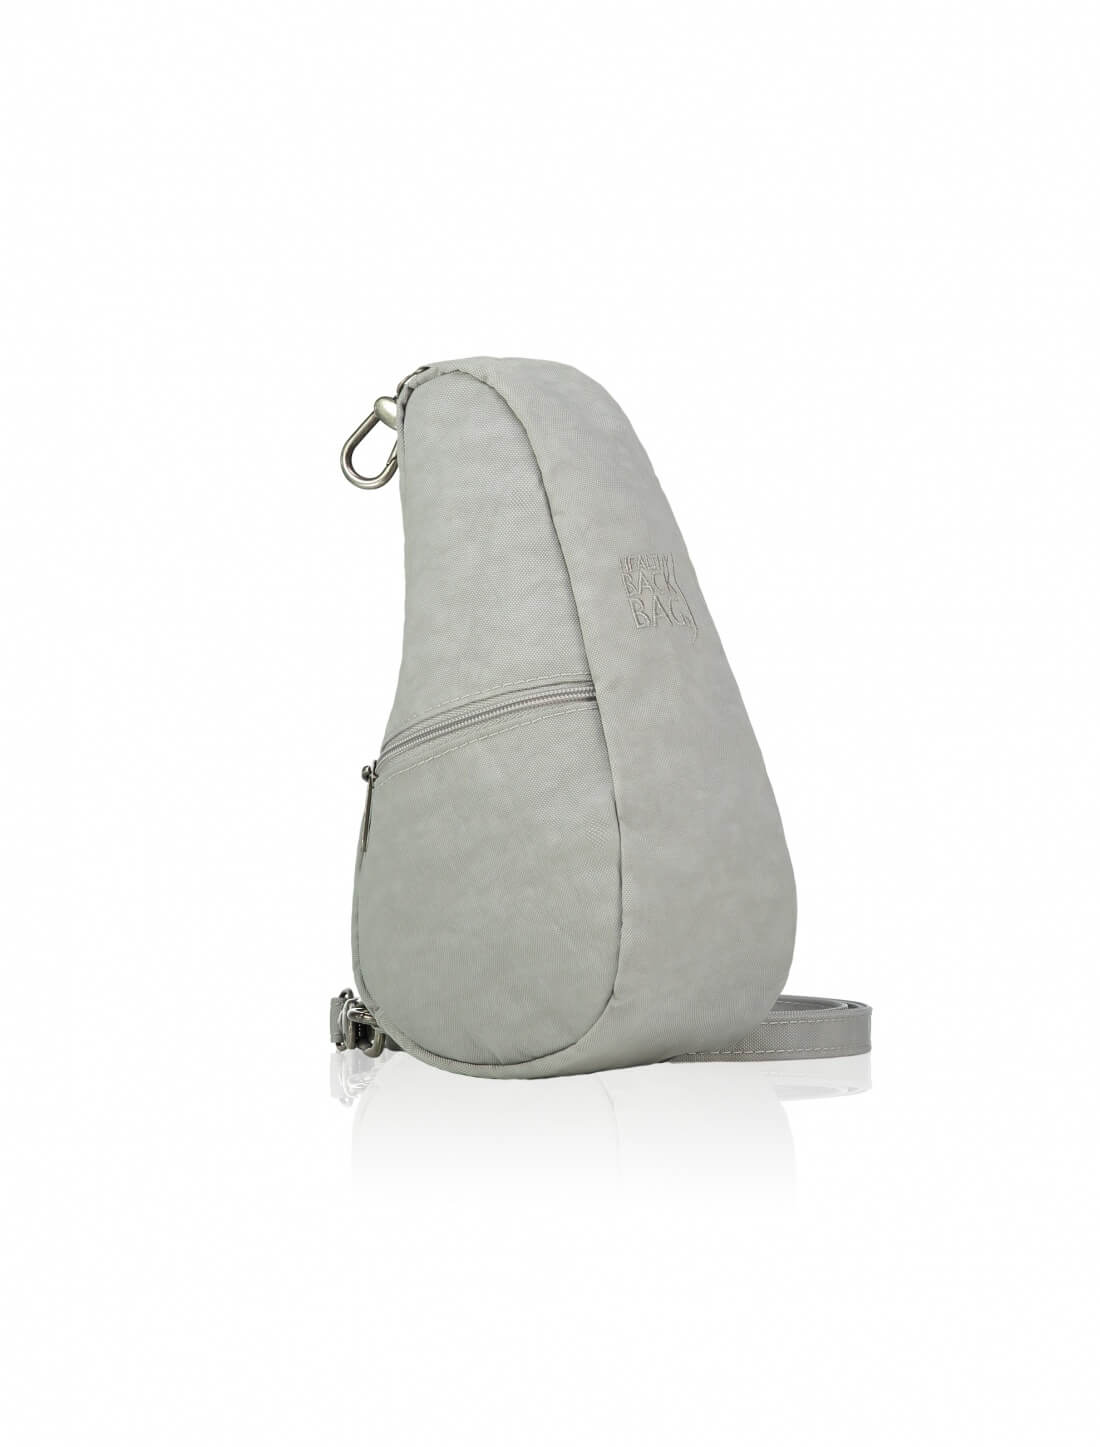 Healthy Back Bag Baglett Textured Frost Grey-21298